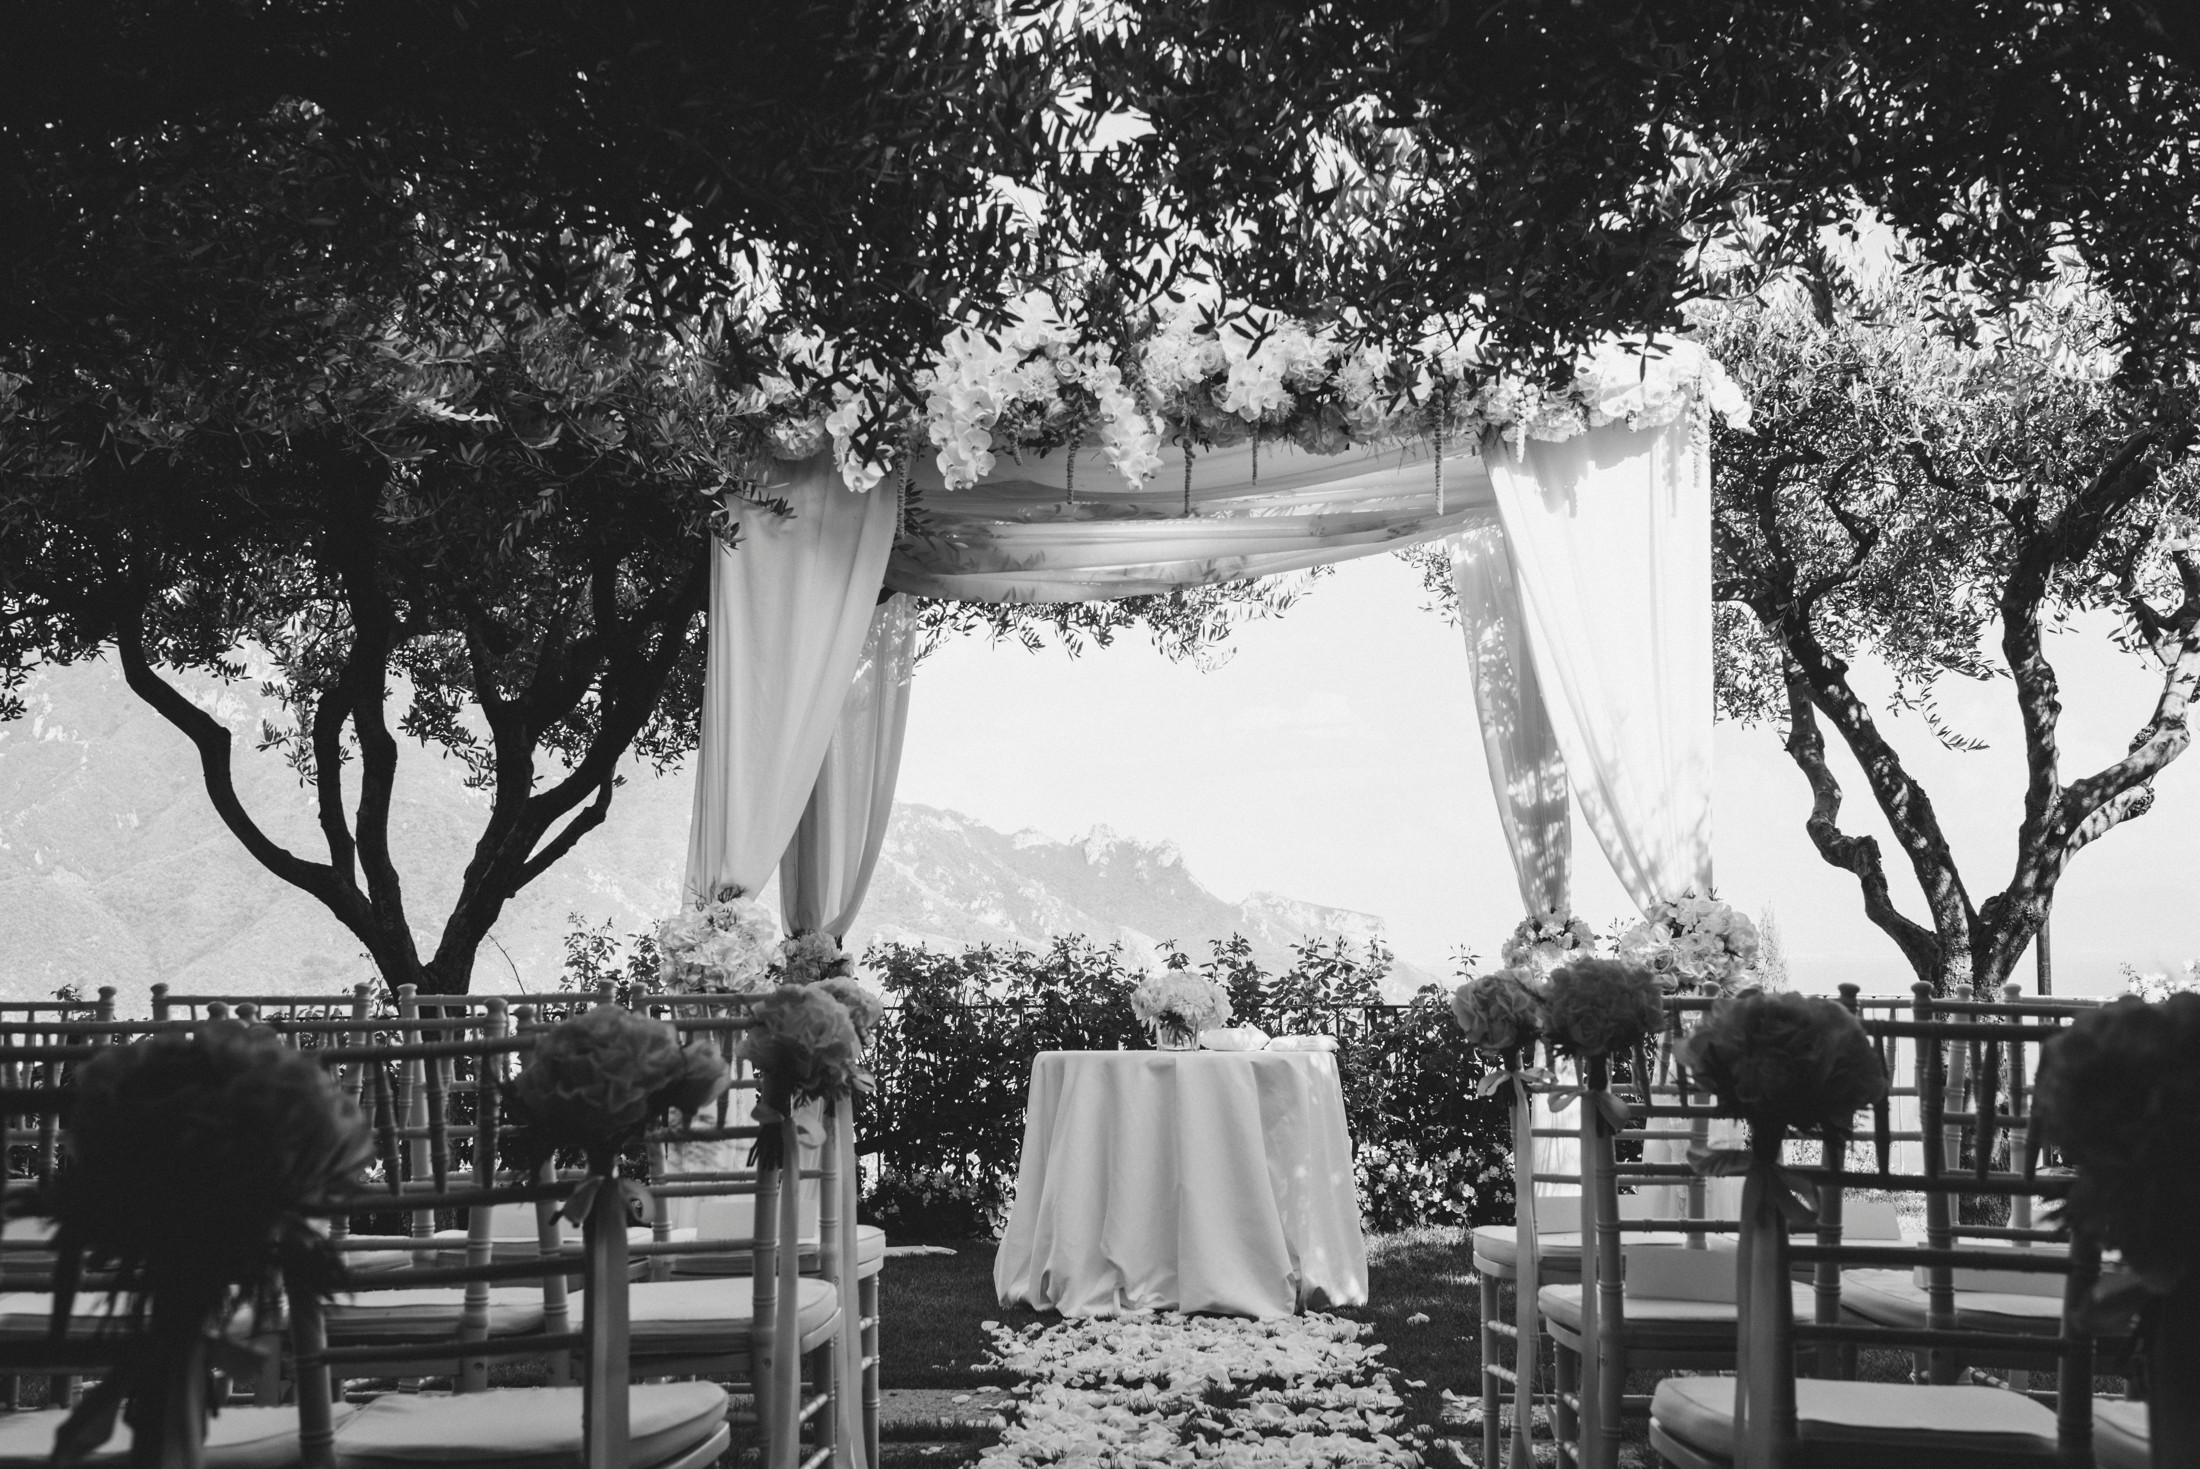 wedding ceremony location in black and white